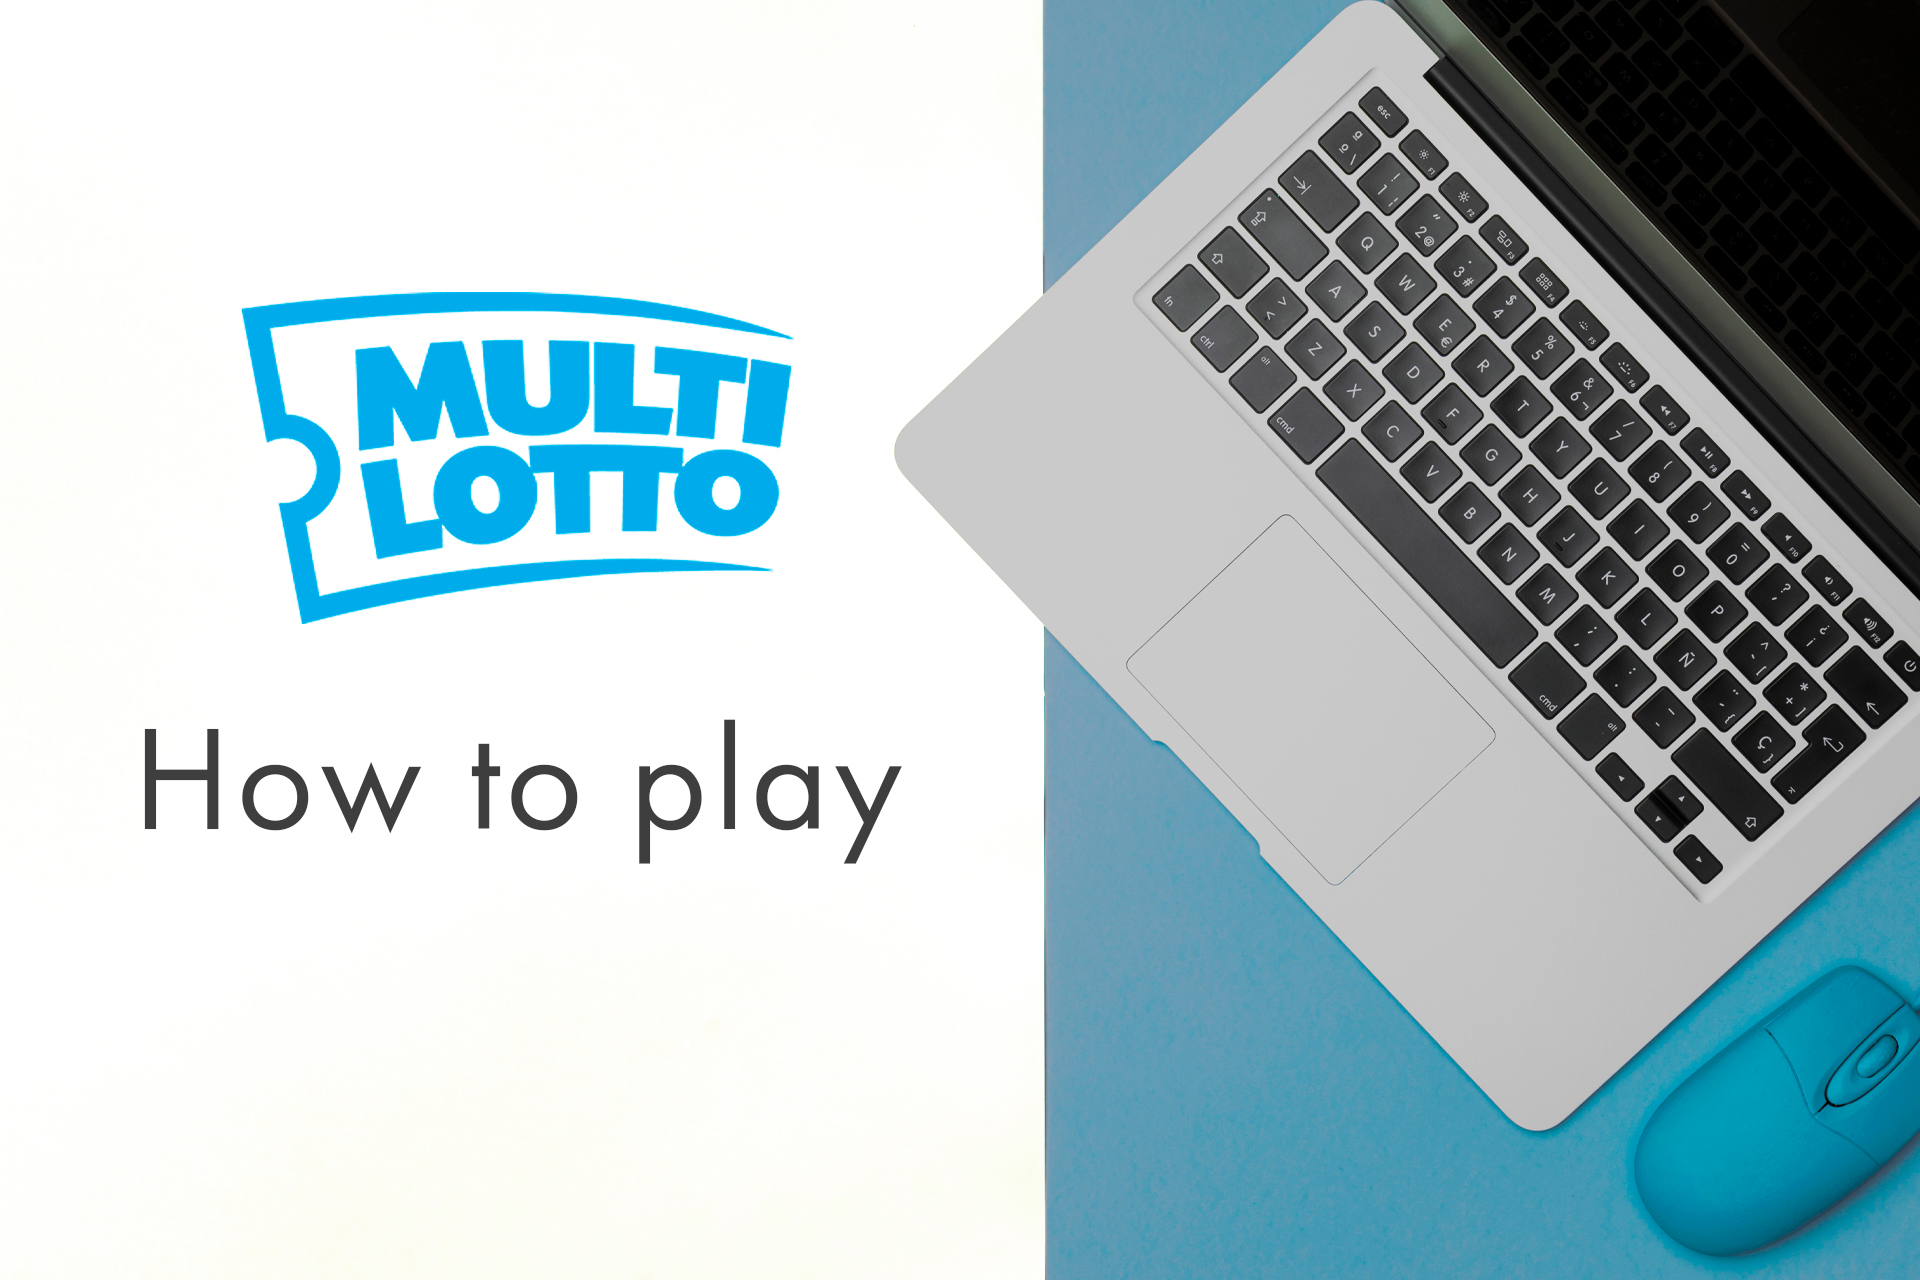 To play on MultiLotto you need to choose the lottery and buy at least one ticket.